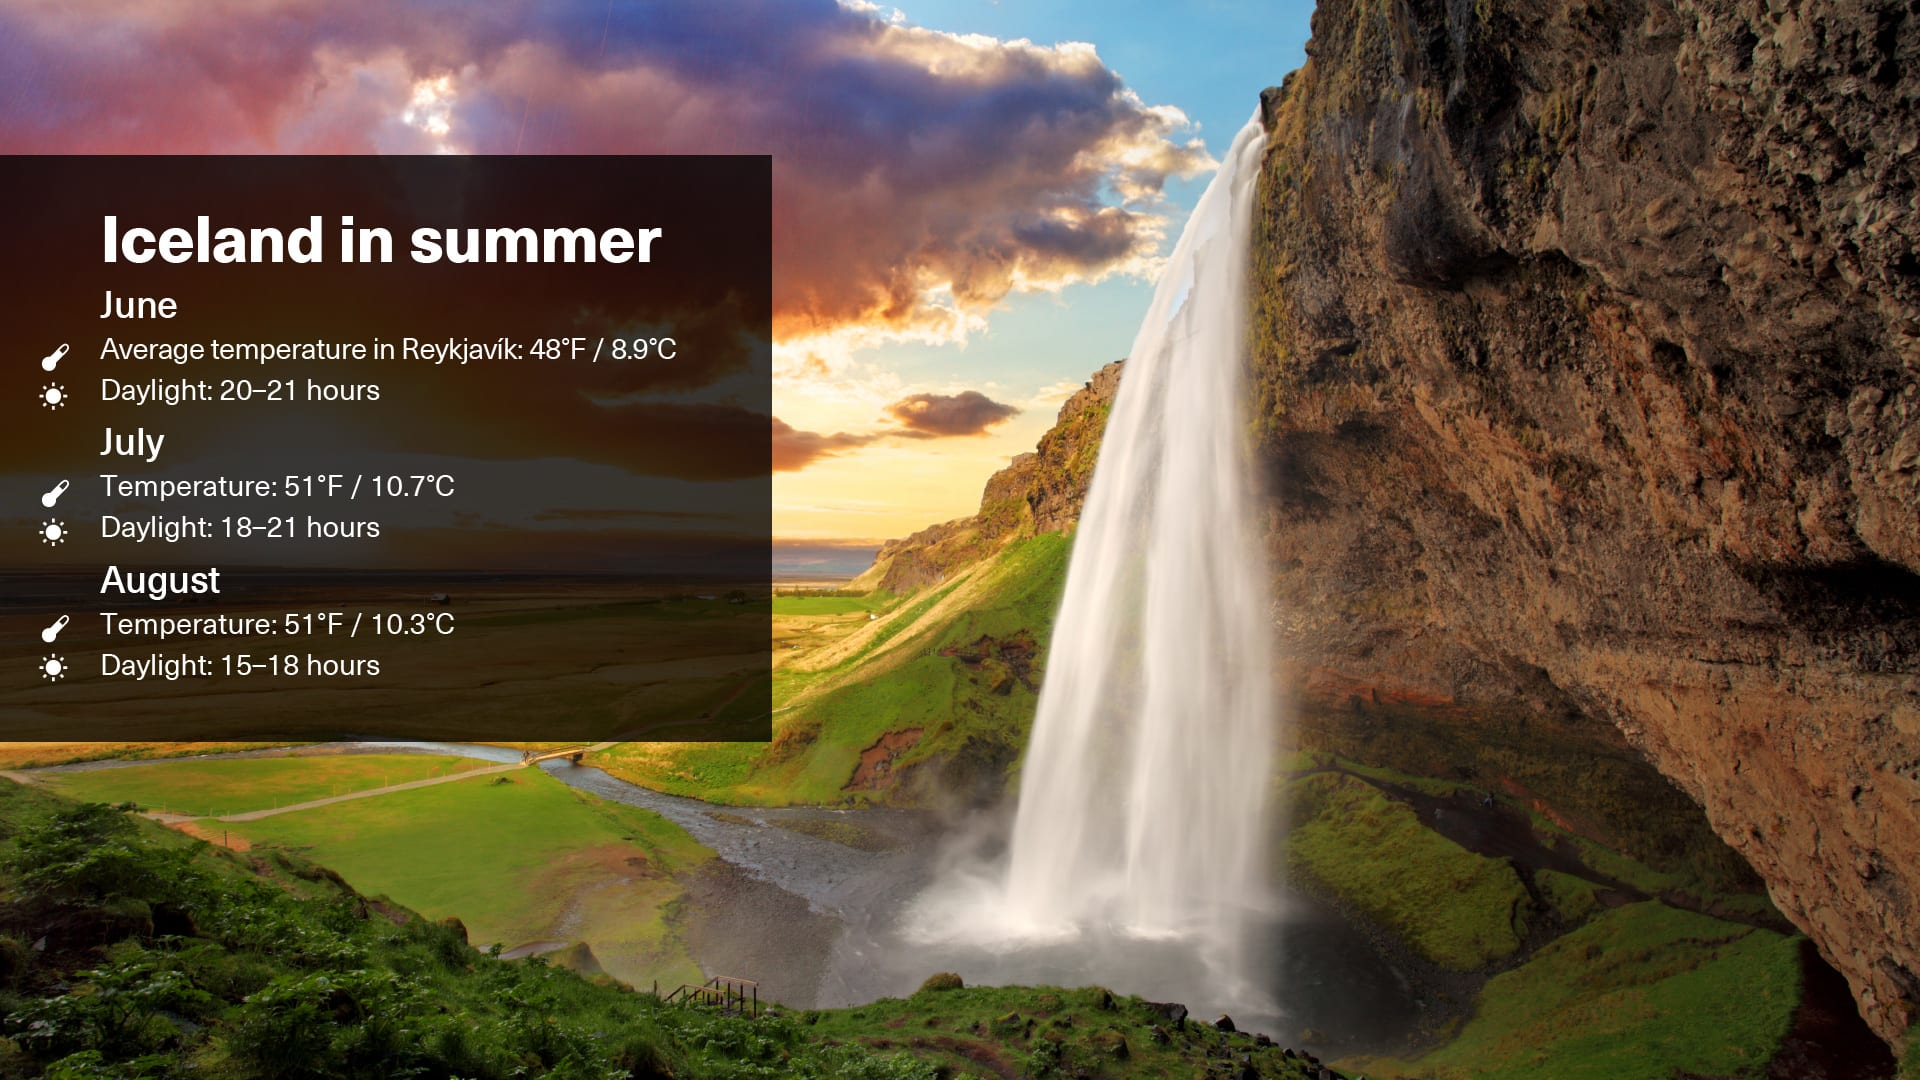 Summer weather shown via an illustrative graphic with Seljalandsfoss waterfall pictured and text overleaf that displays the weather and daylight hours in June, July and August in Iceland